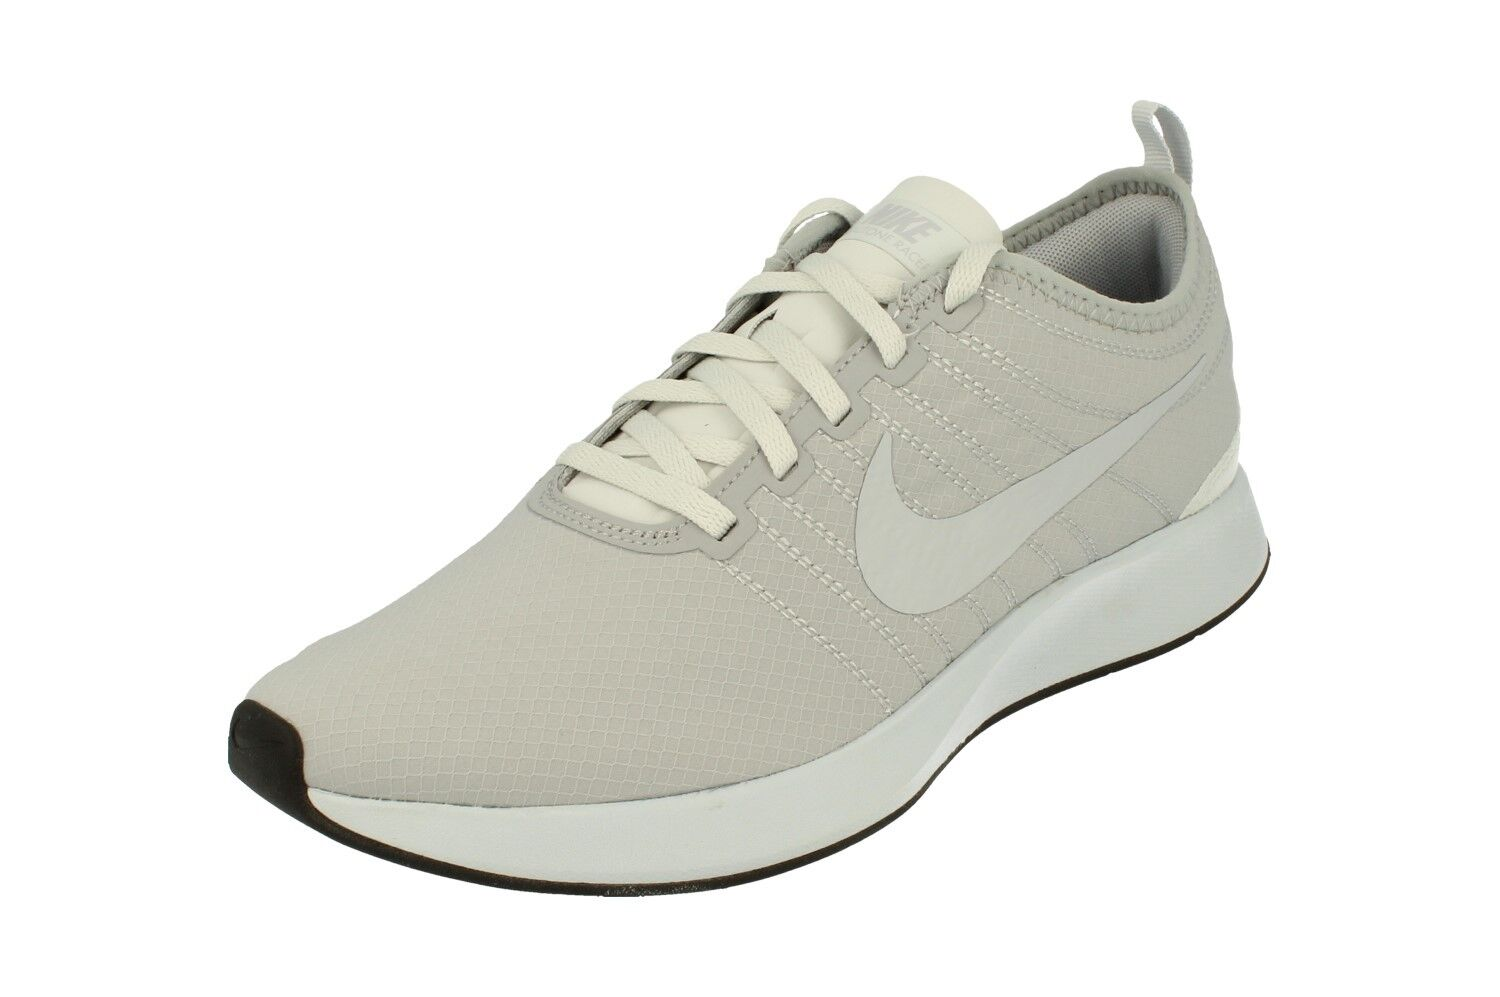 Nike Dualtone Racer Se Mens Running Trainers 922170 Sneakers shoes 003